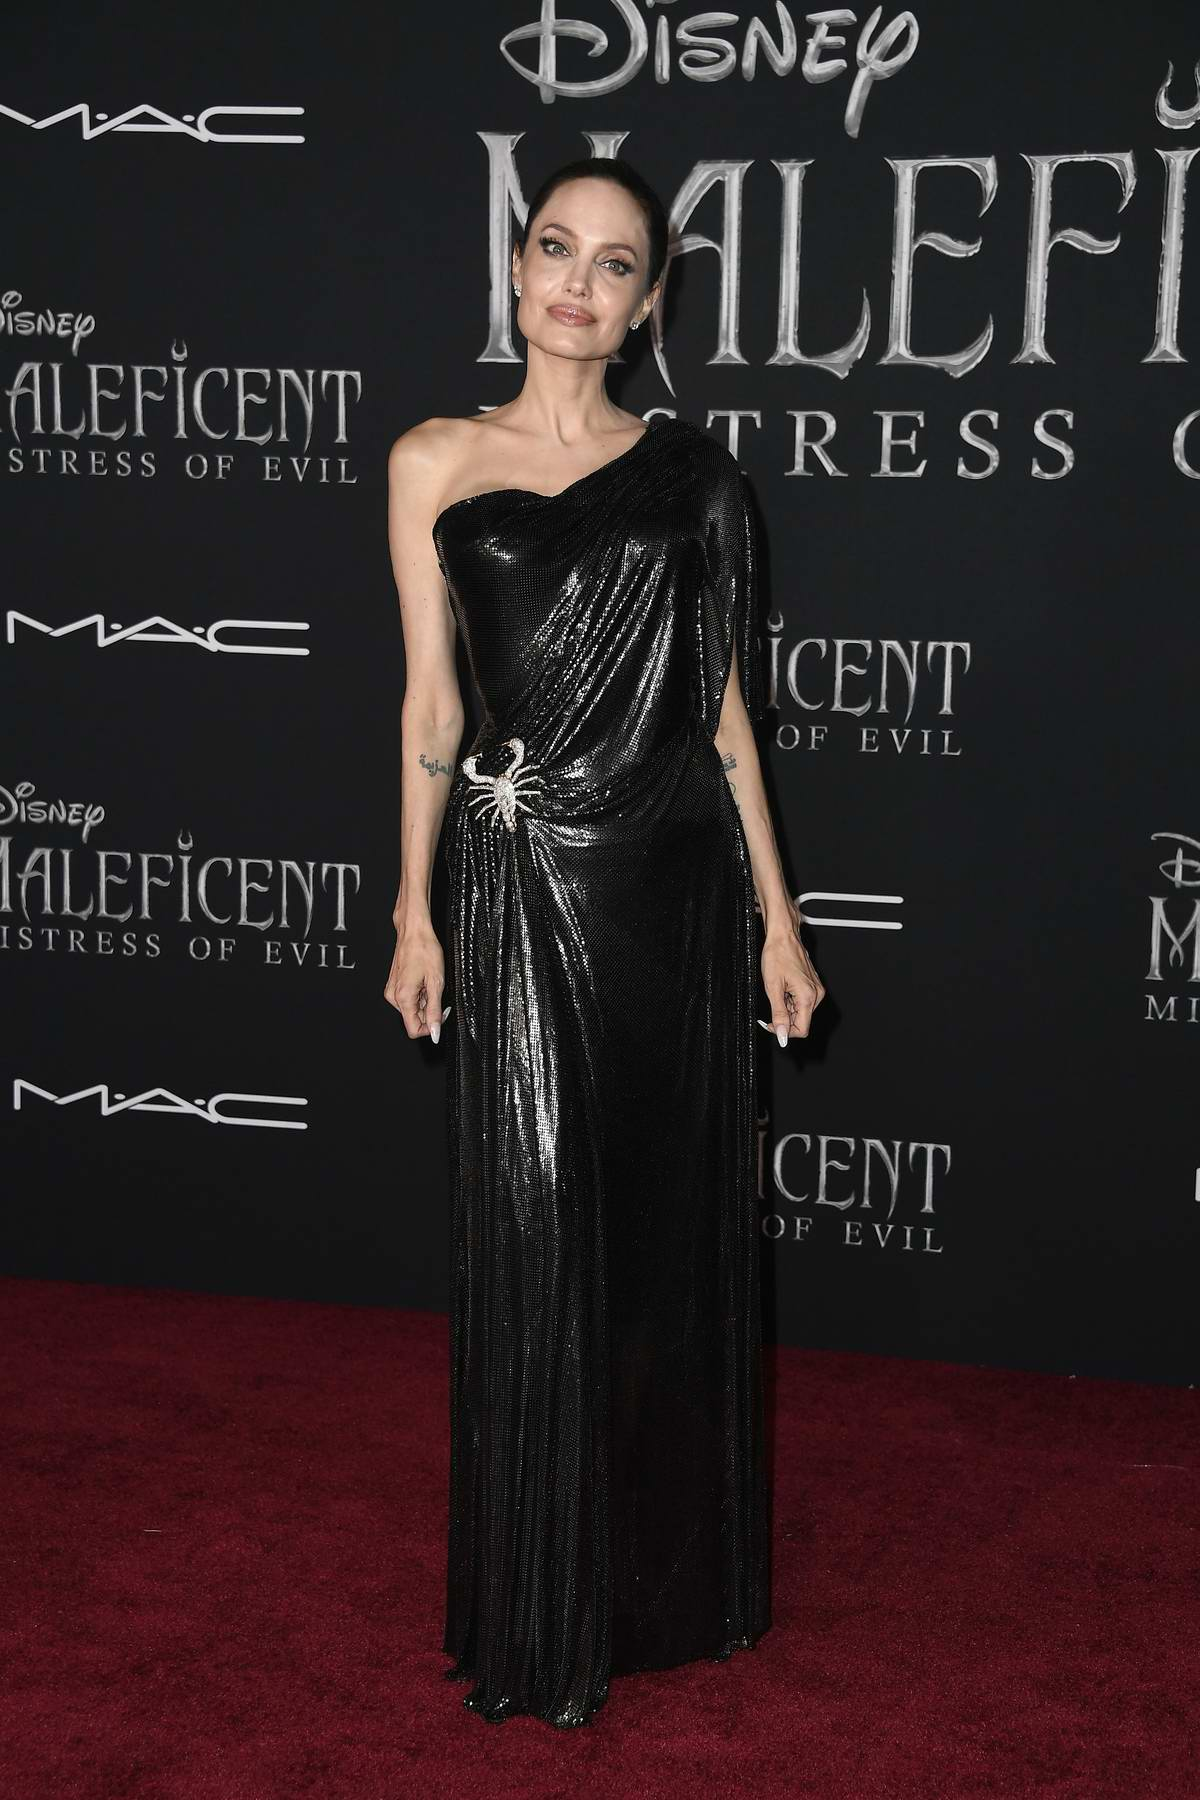 Angelina Jolie attends the World Premiere of Disney's 'Maleficent: Mistress of Evil' at El Capitan Theatre in Los Angeles